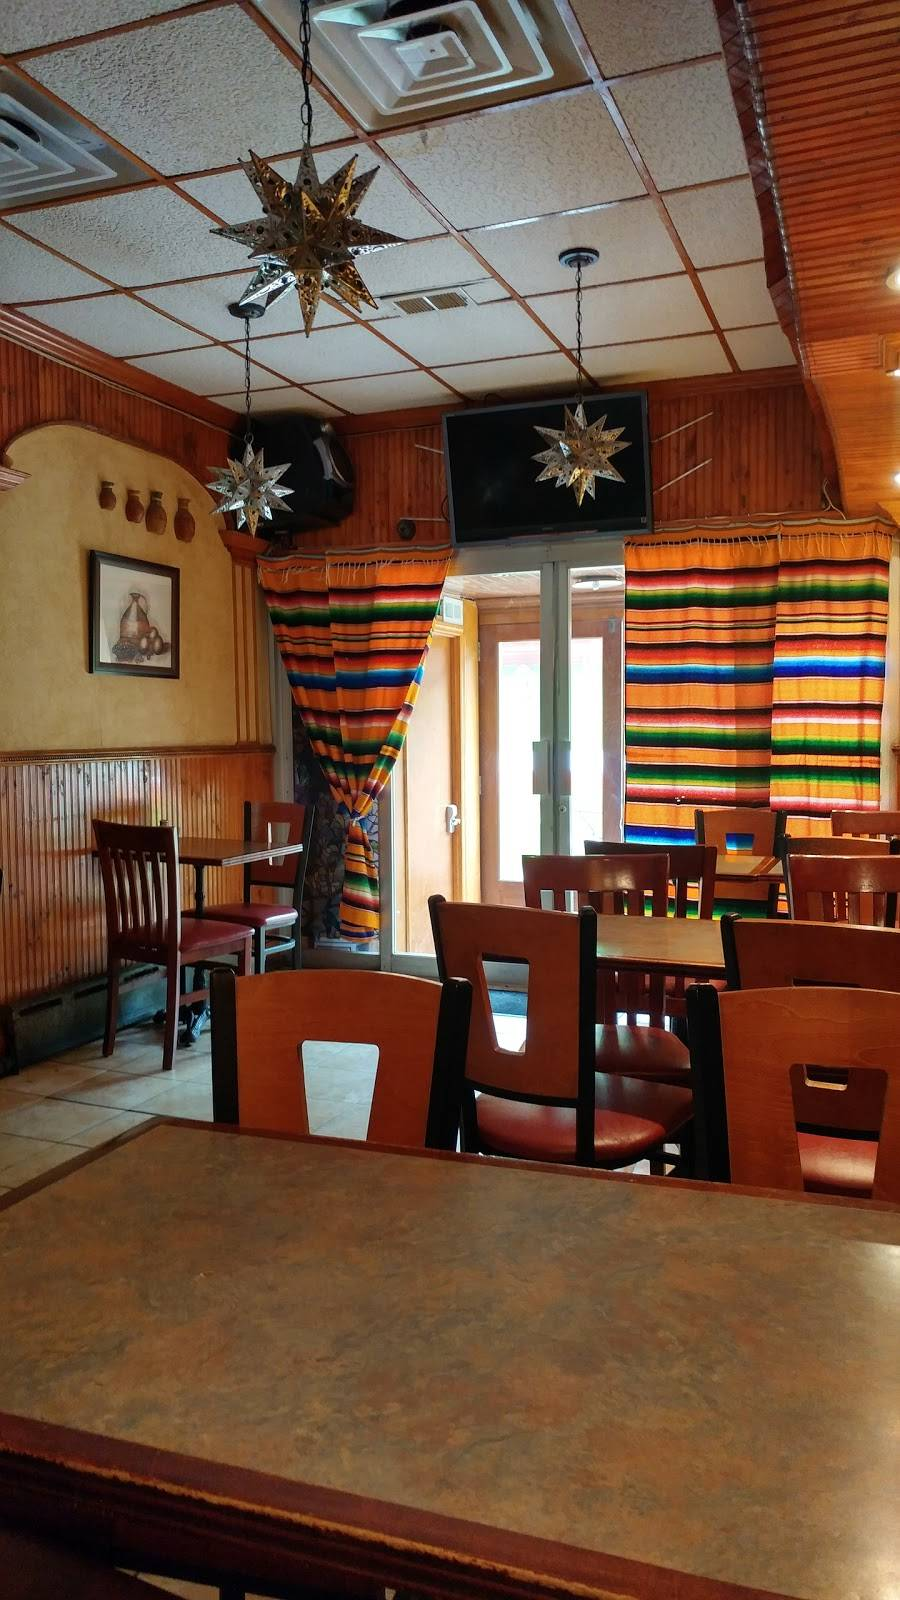 Castros | restaurant | 511 Myrtle Ave, Brooklyn, NY 11205, USA | 7183981459 OR +1 718-398-1459